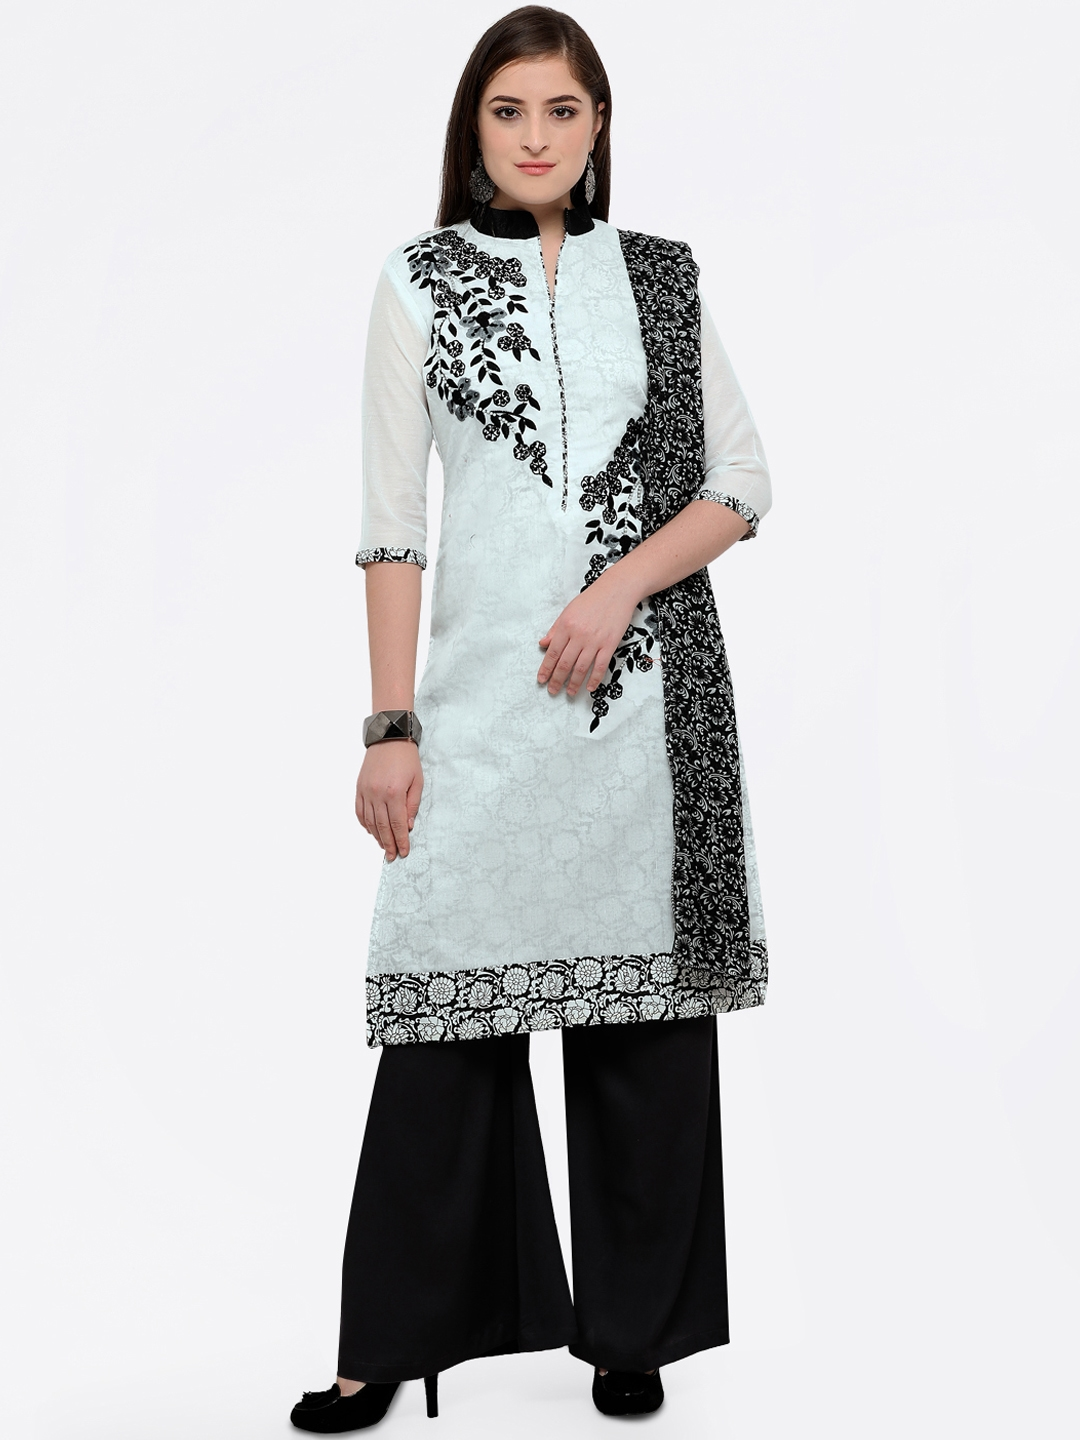 1b3bba6d20 MANVAA Off-White & Black Cotton Blend Printed Embroidered Semi-Stitched  Dress Material